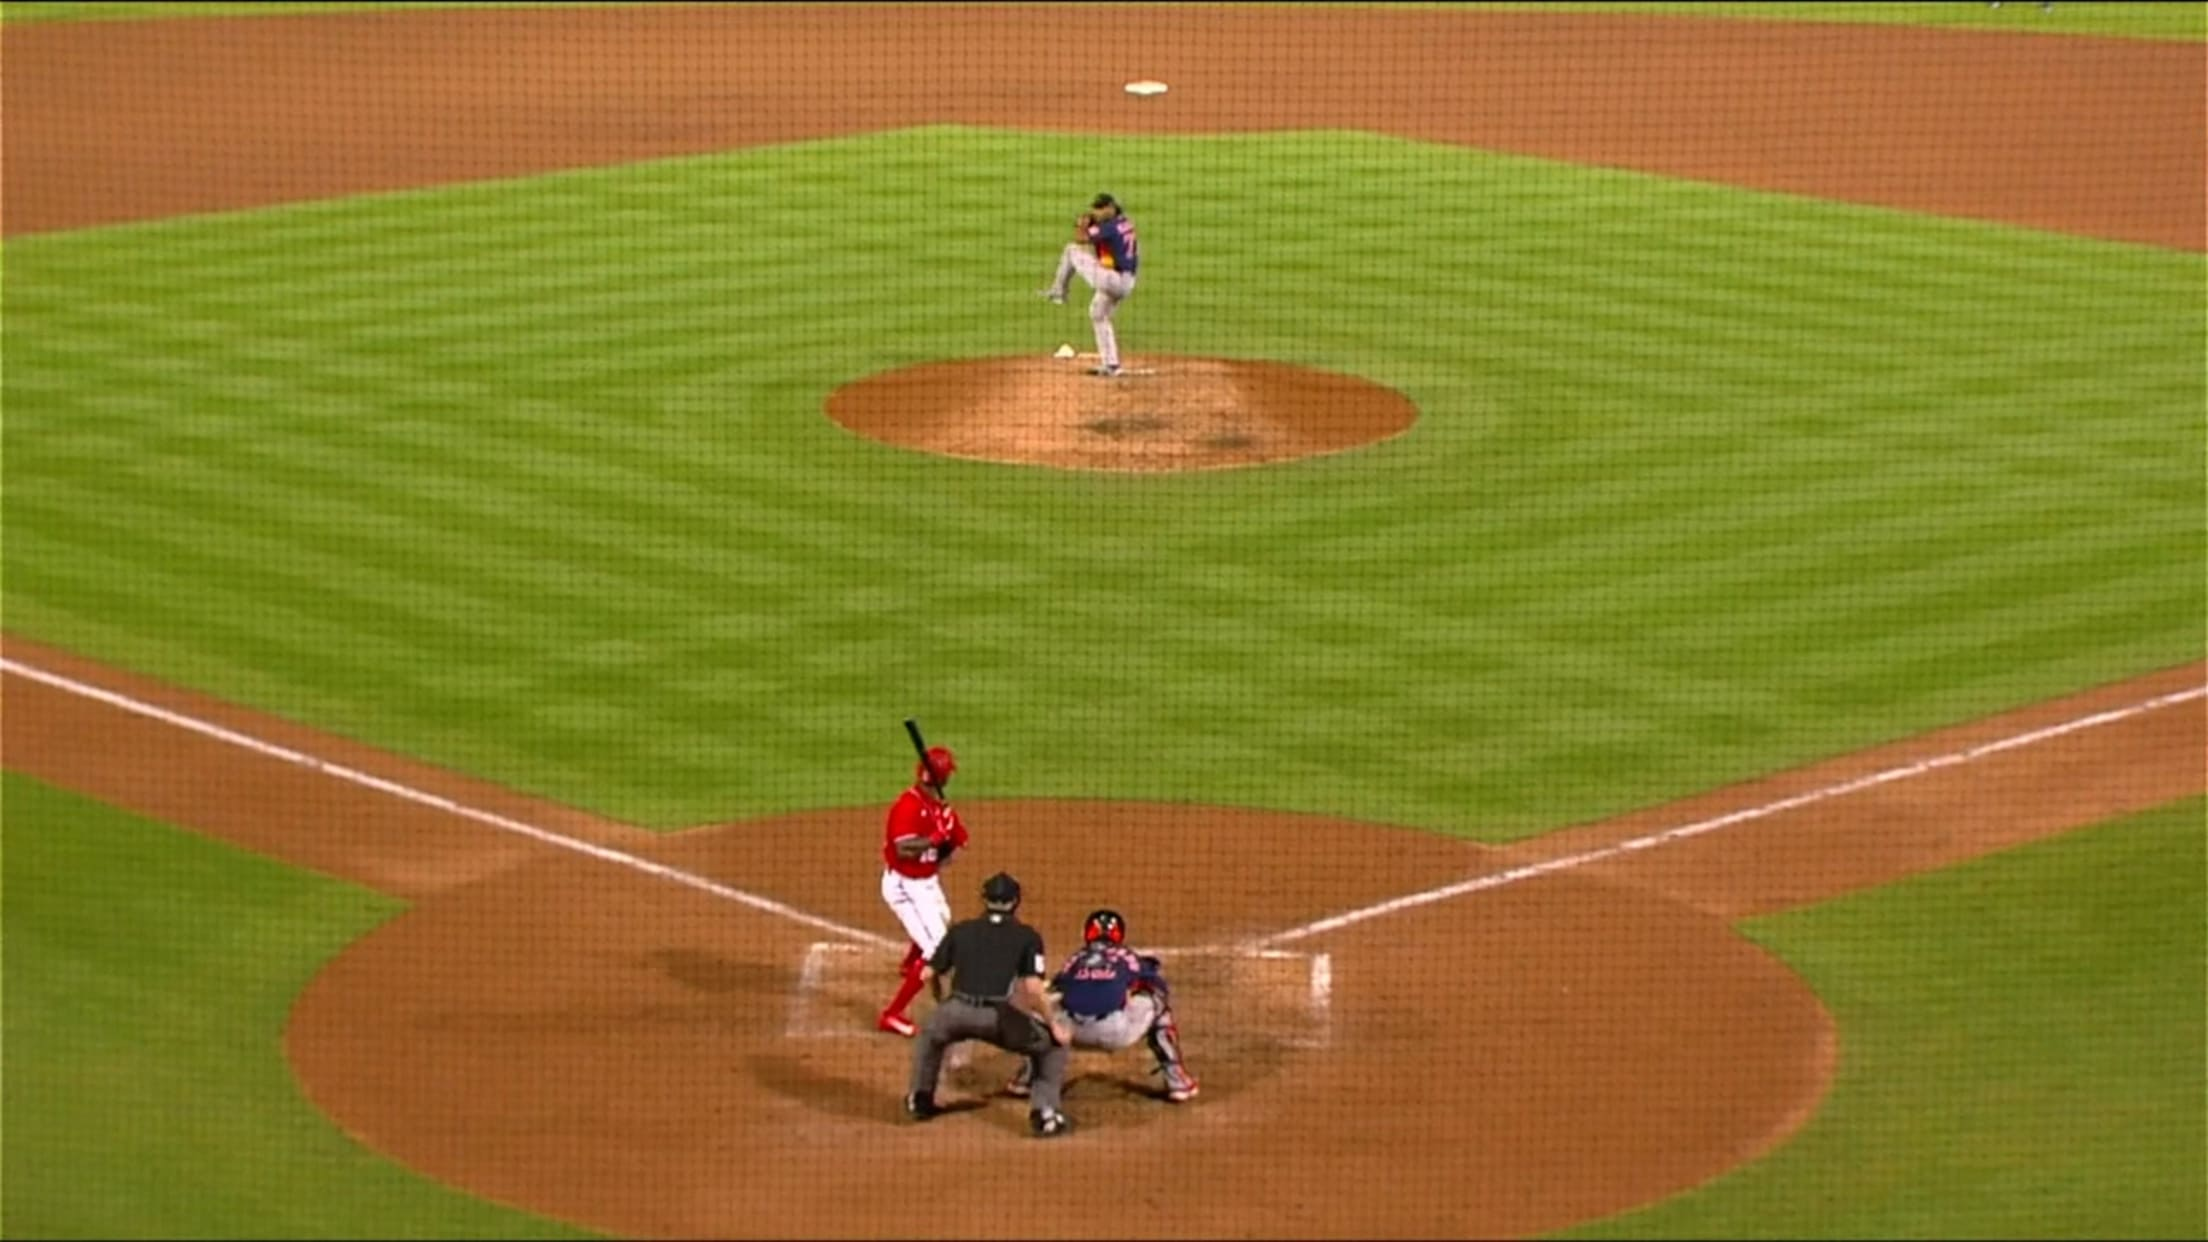 Luis Garcia's immaculate inning